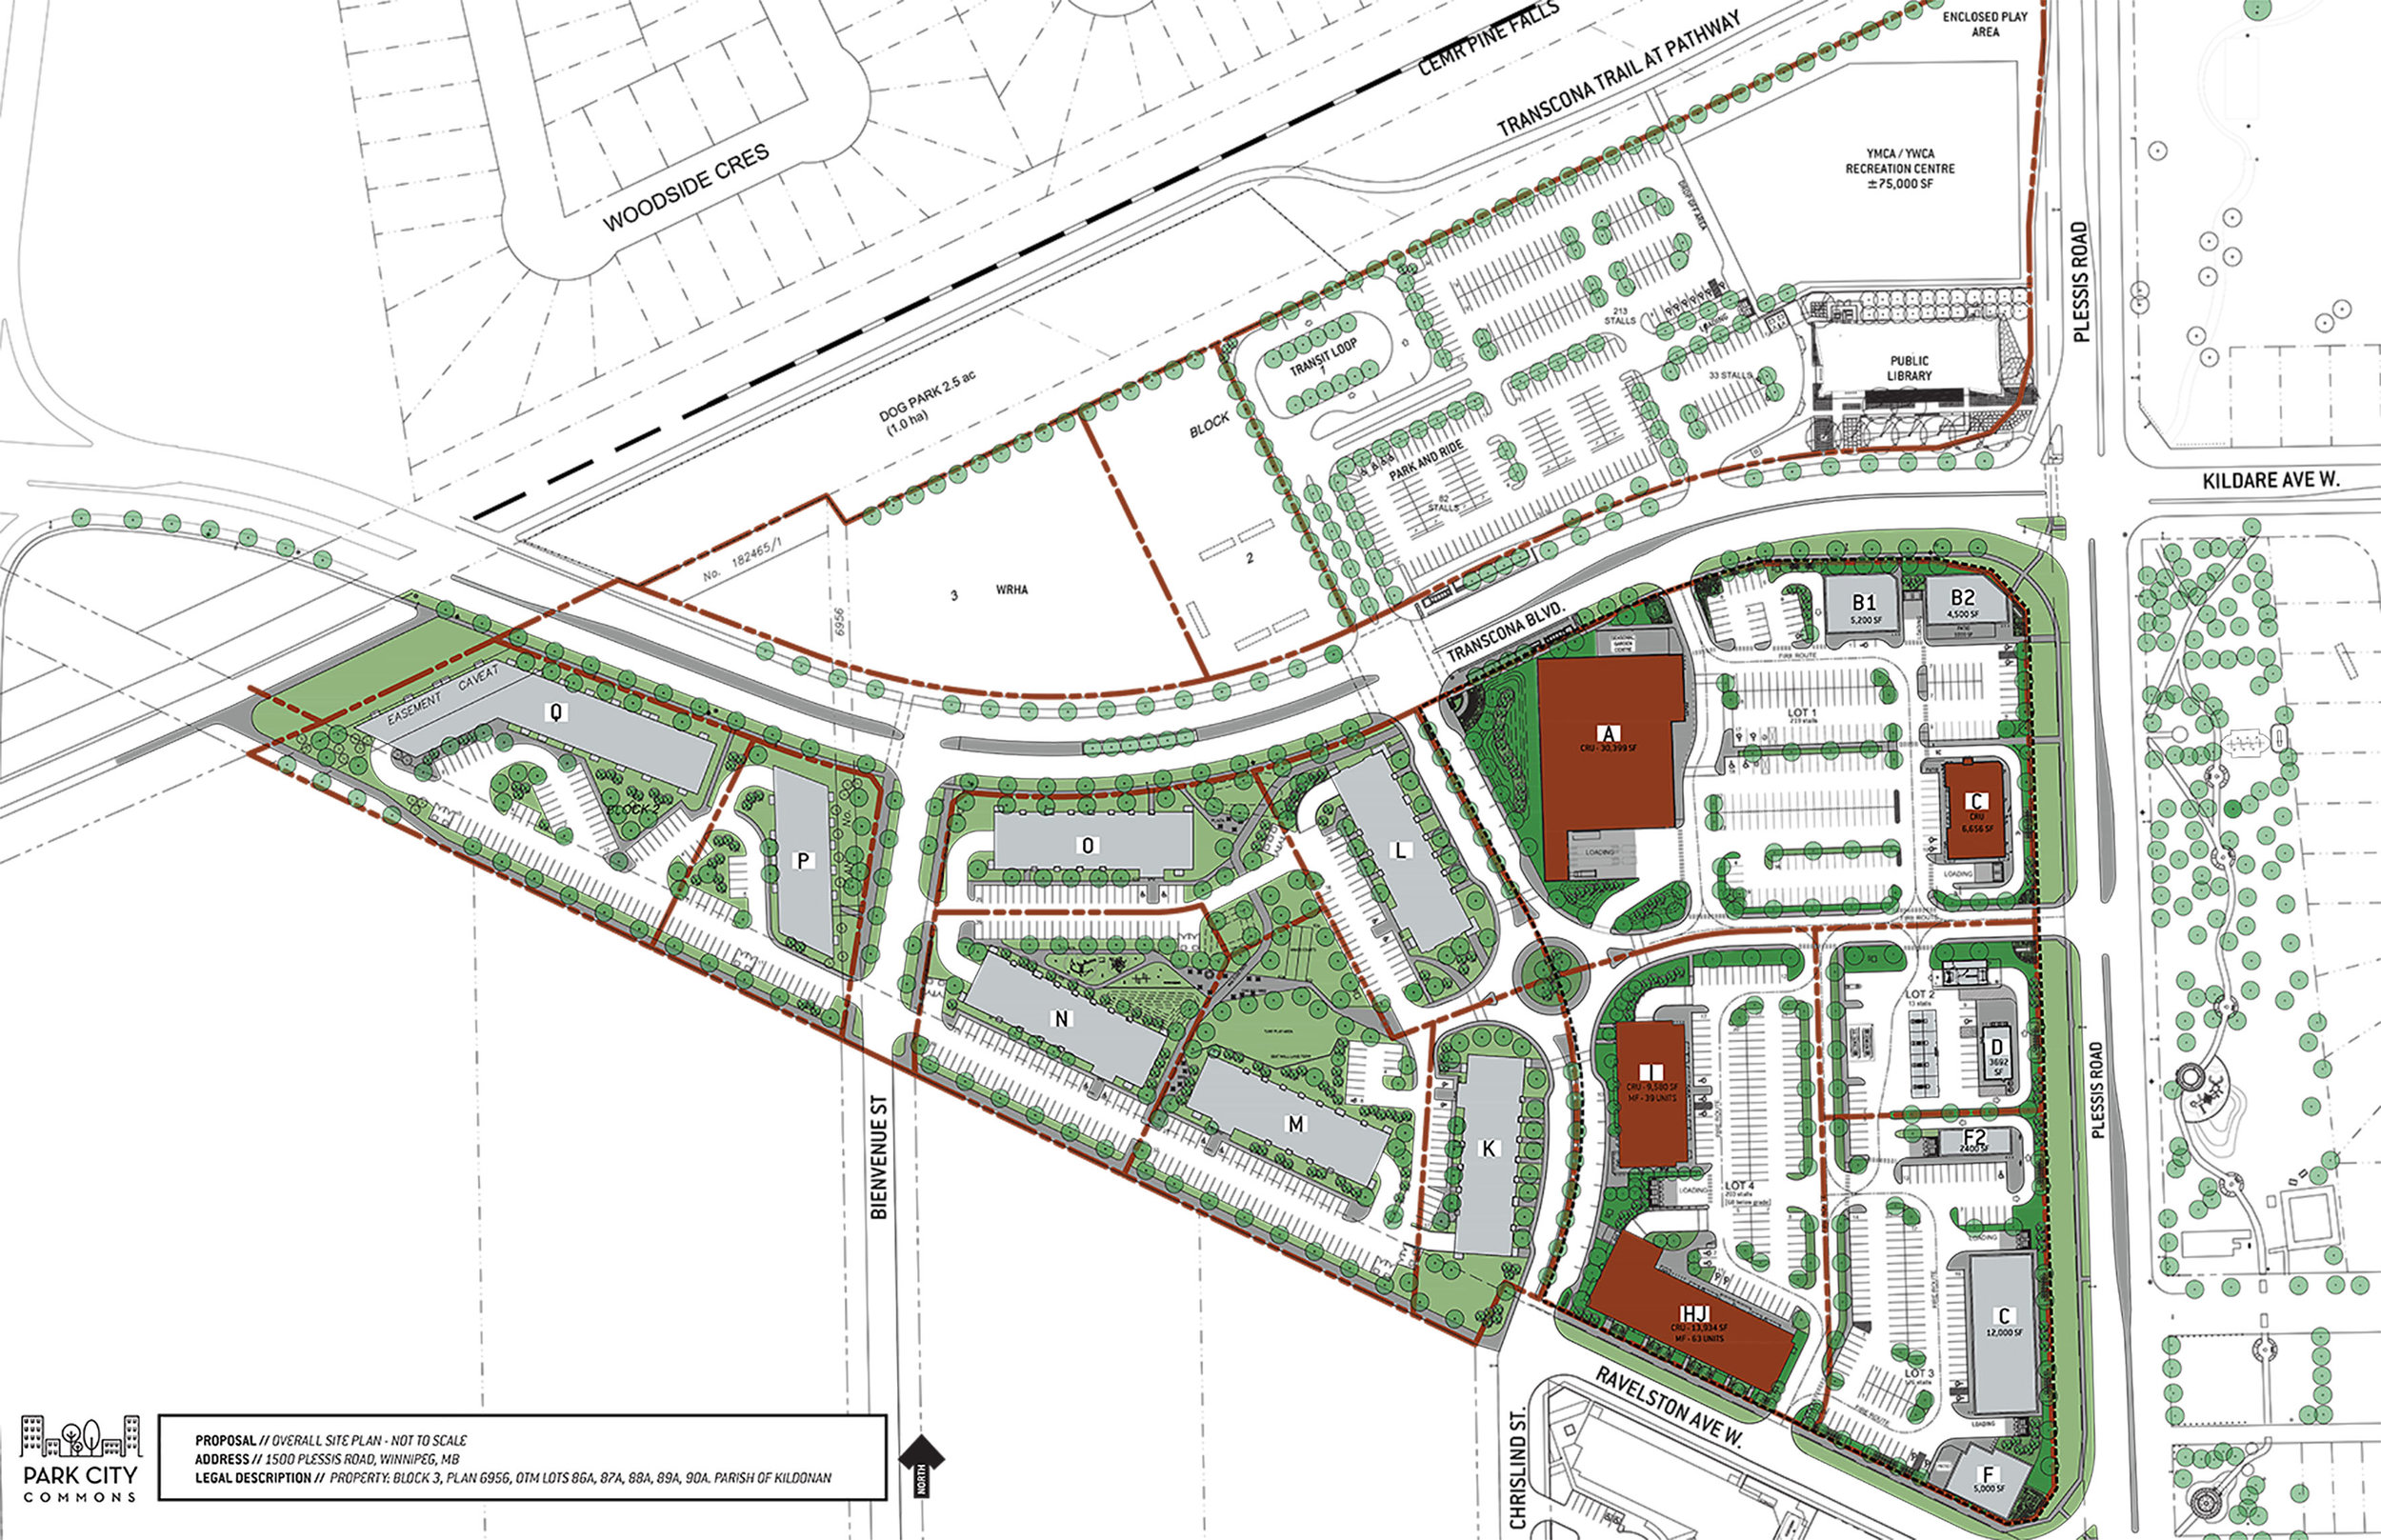 20171107 - RENDERED SITE PLAN - OVERALL.jpg